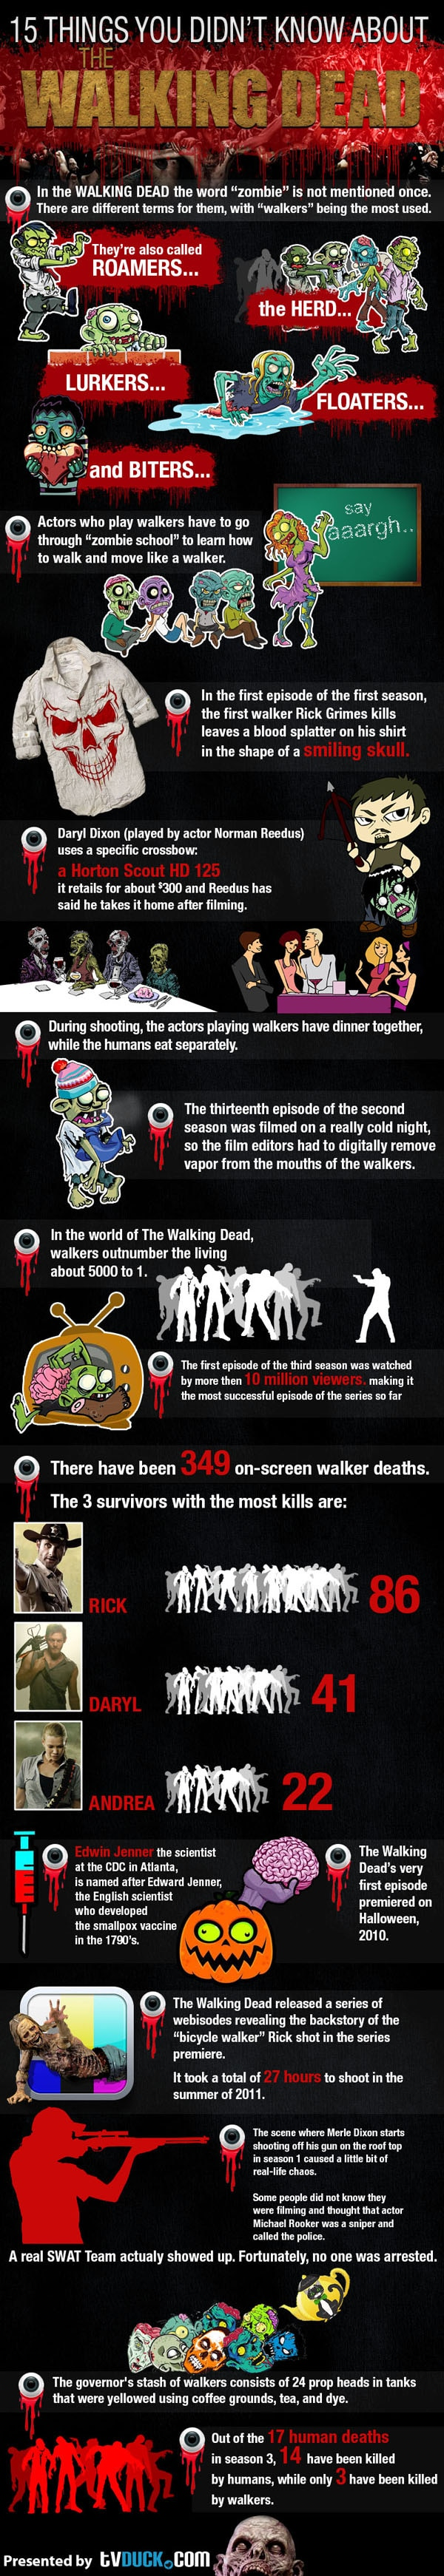 New The Walking Dead Themed Infographic Breaks Things Down For You